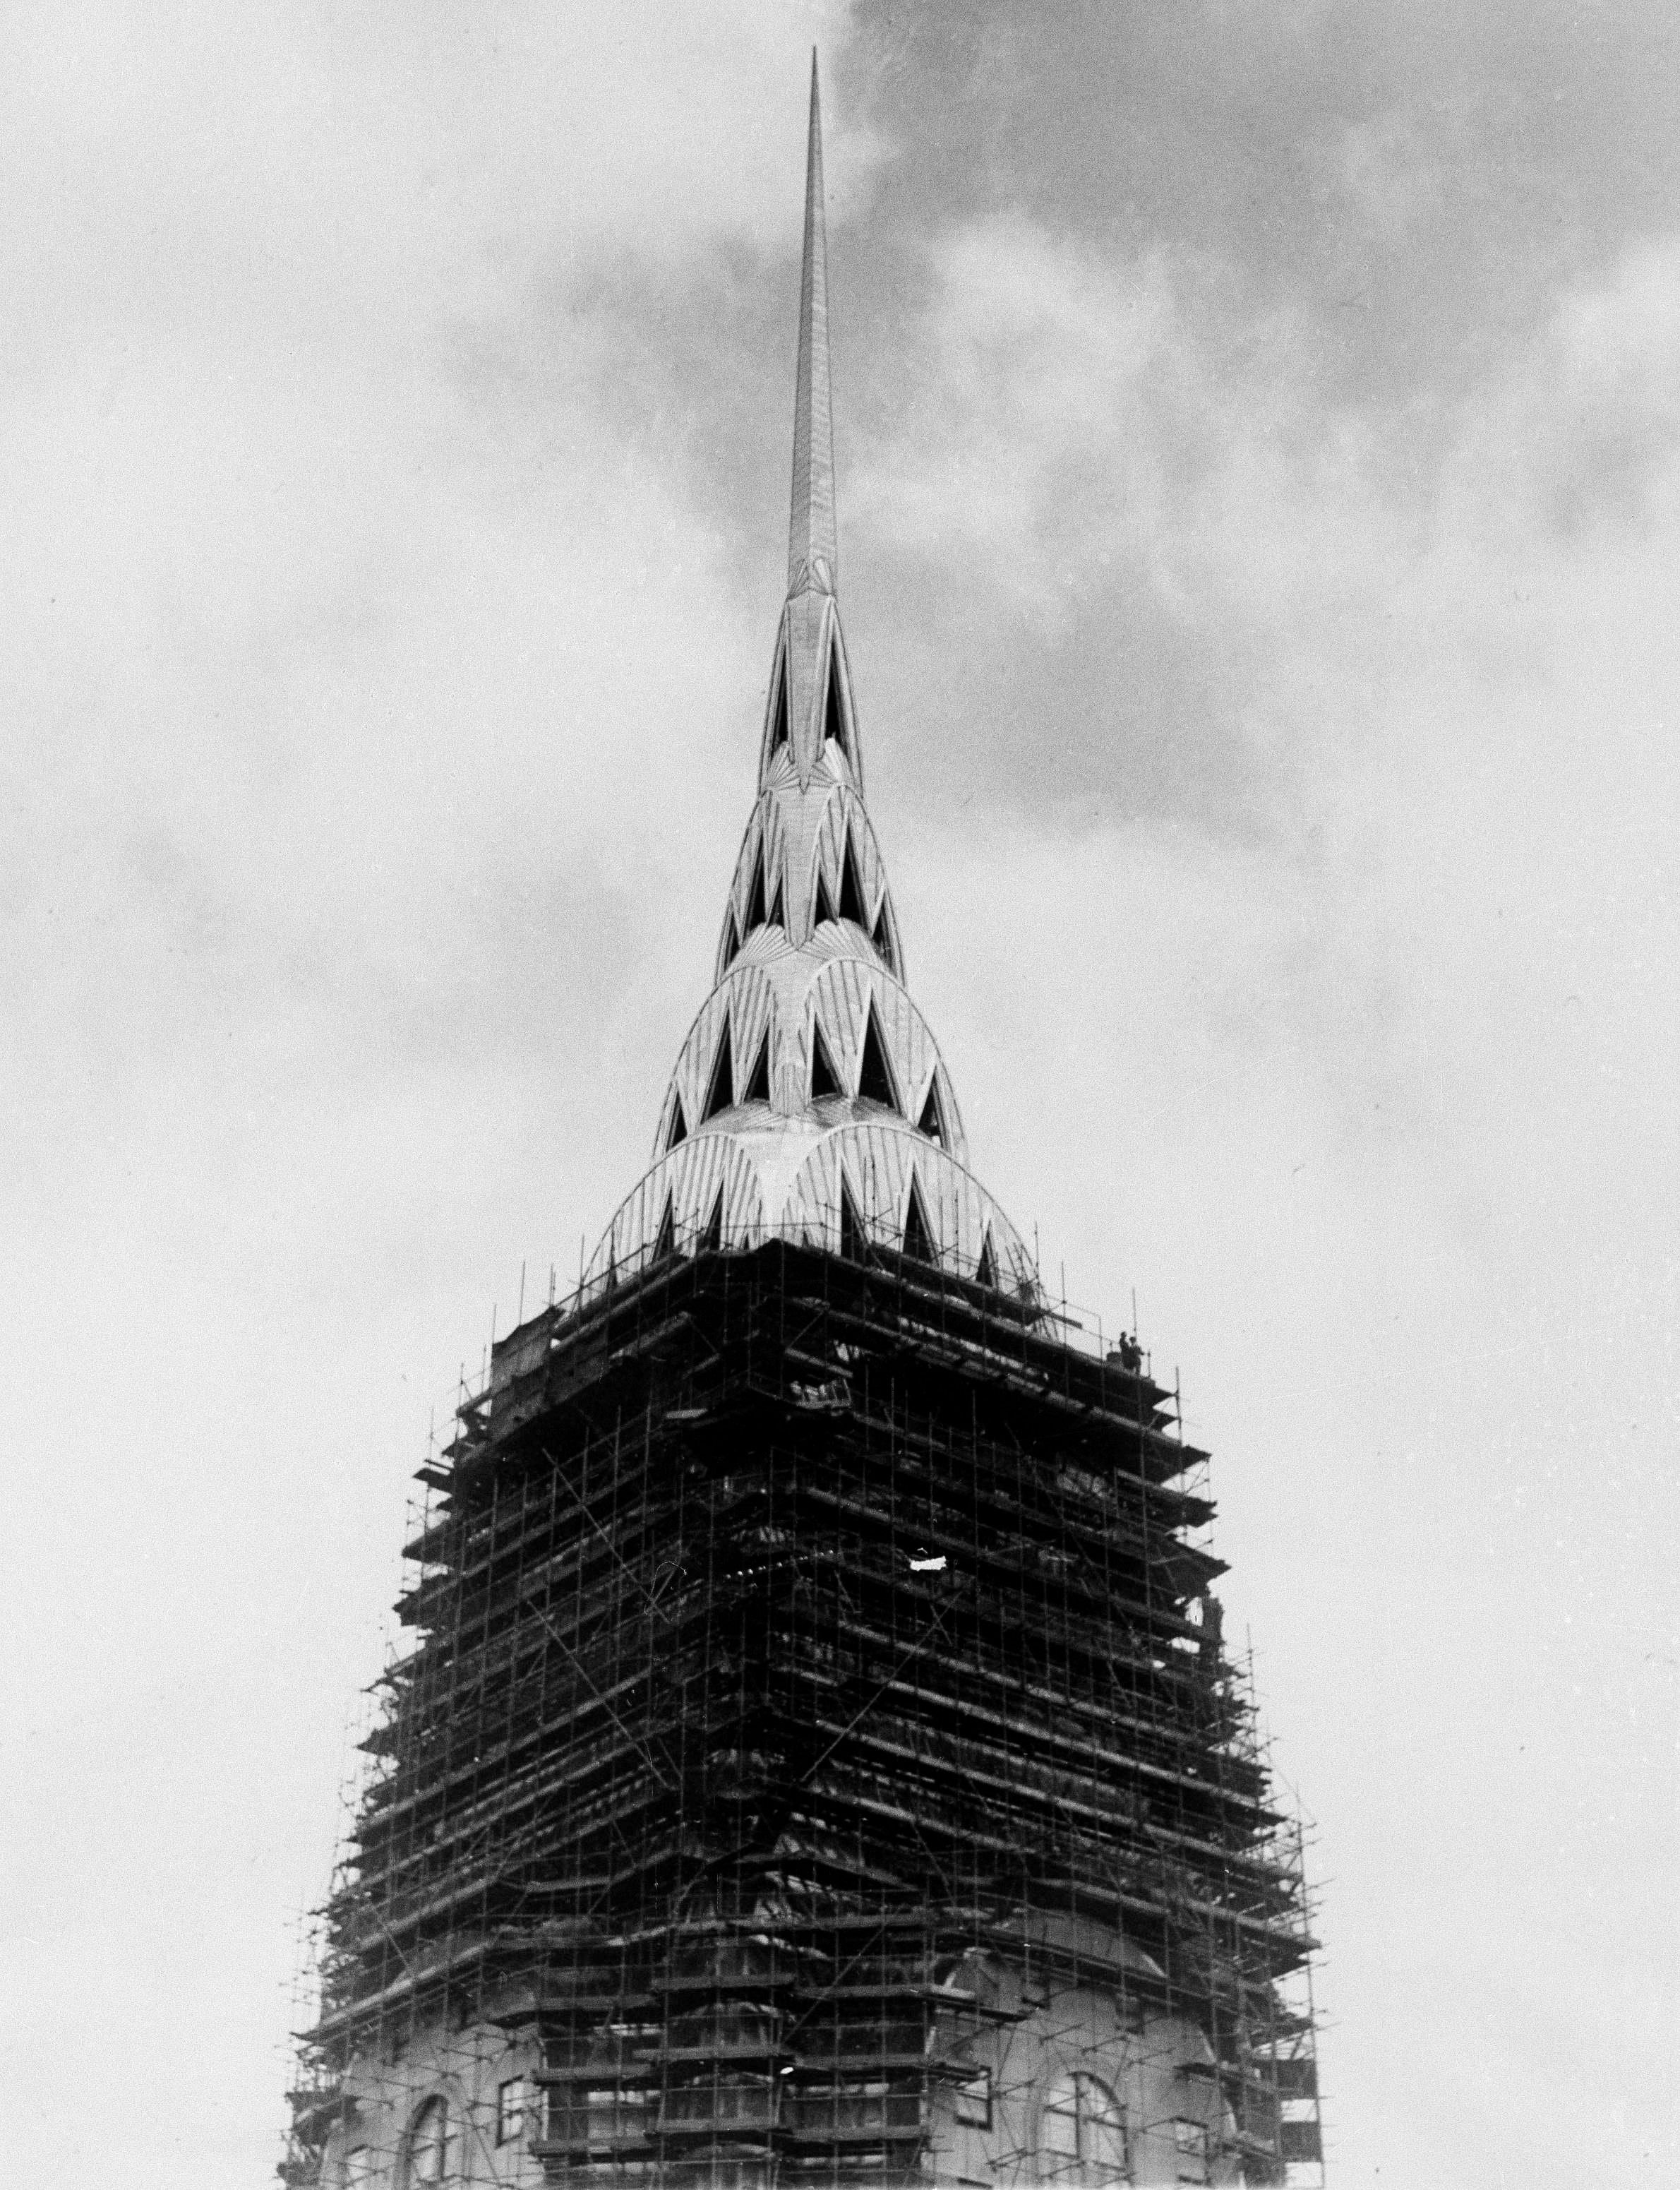 The Schemes and Secrets of Skyscraper Spires